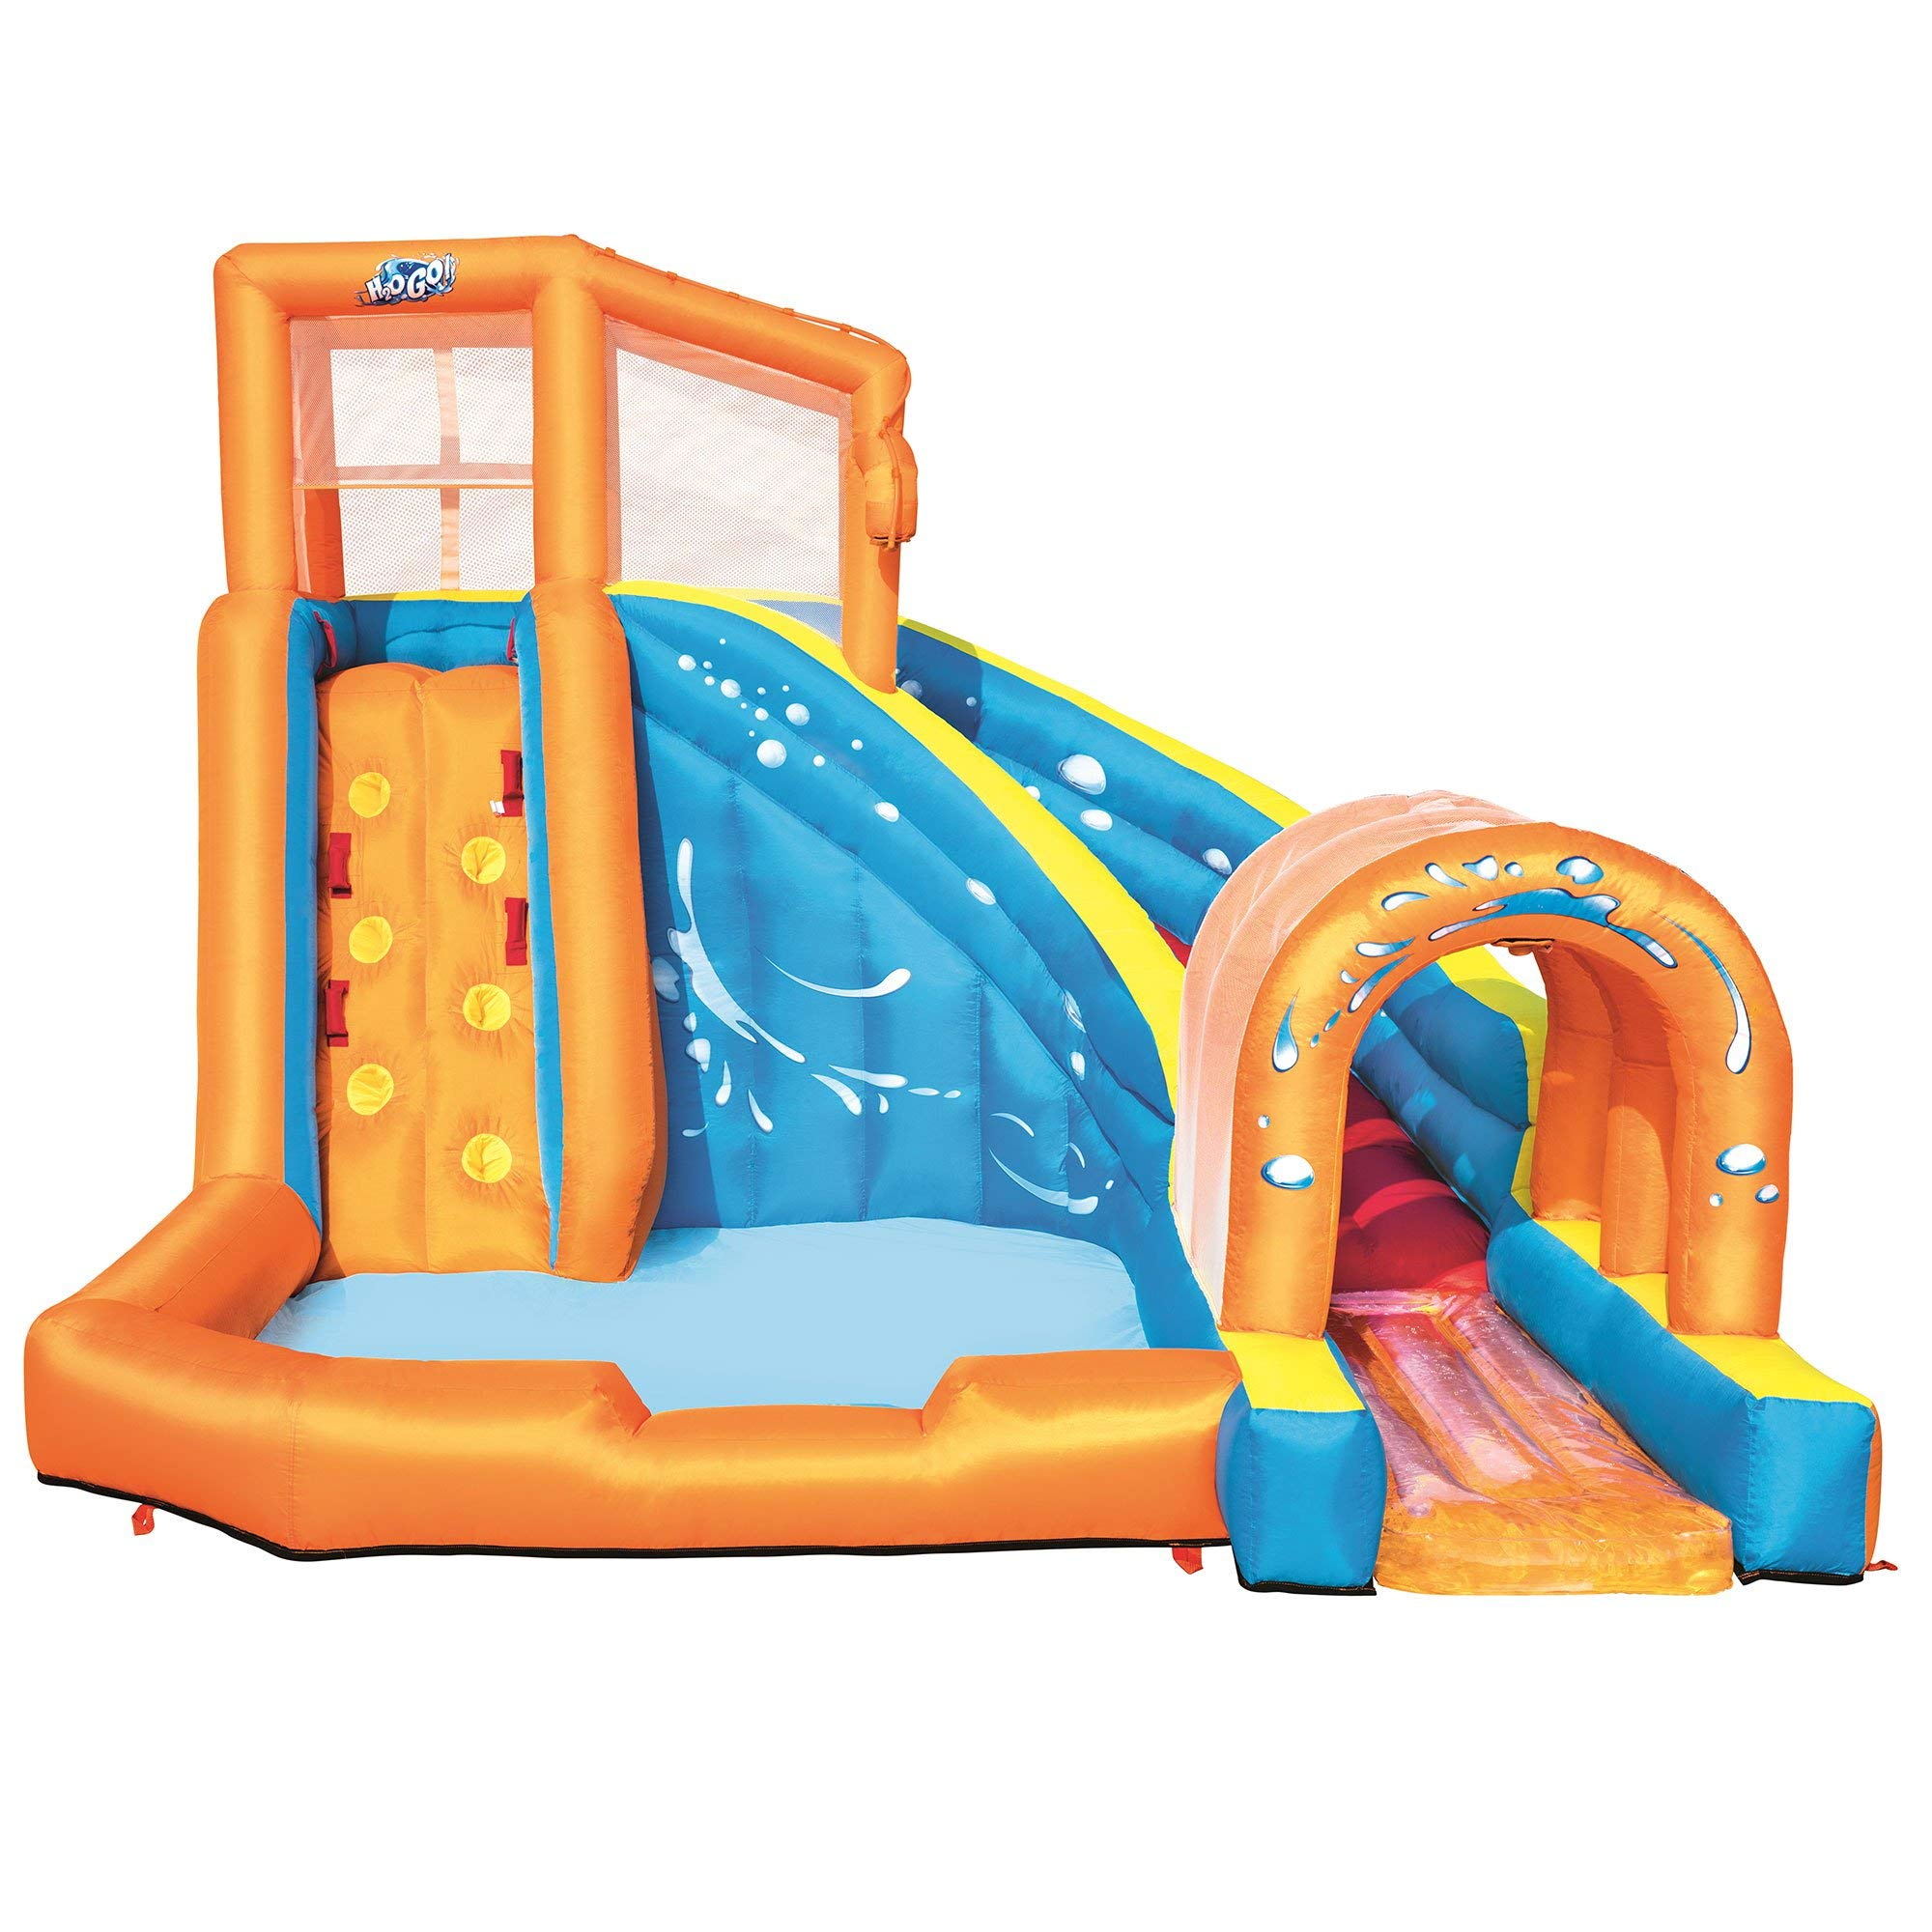 H2OGO! Hurricane Tunnel Blast Mega Inflatable Summer Family Water Park, Multicolored by Bestway (Image #1)